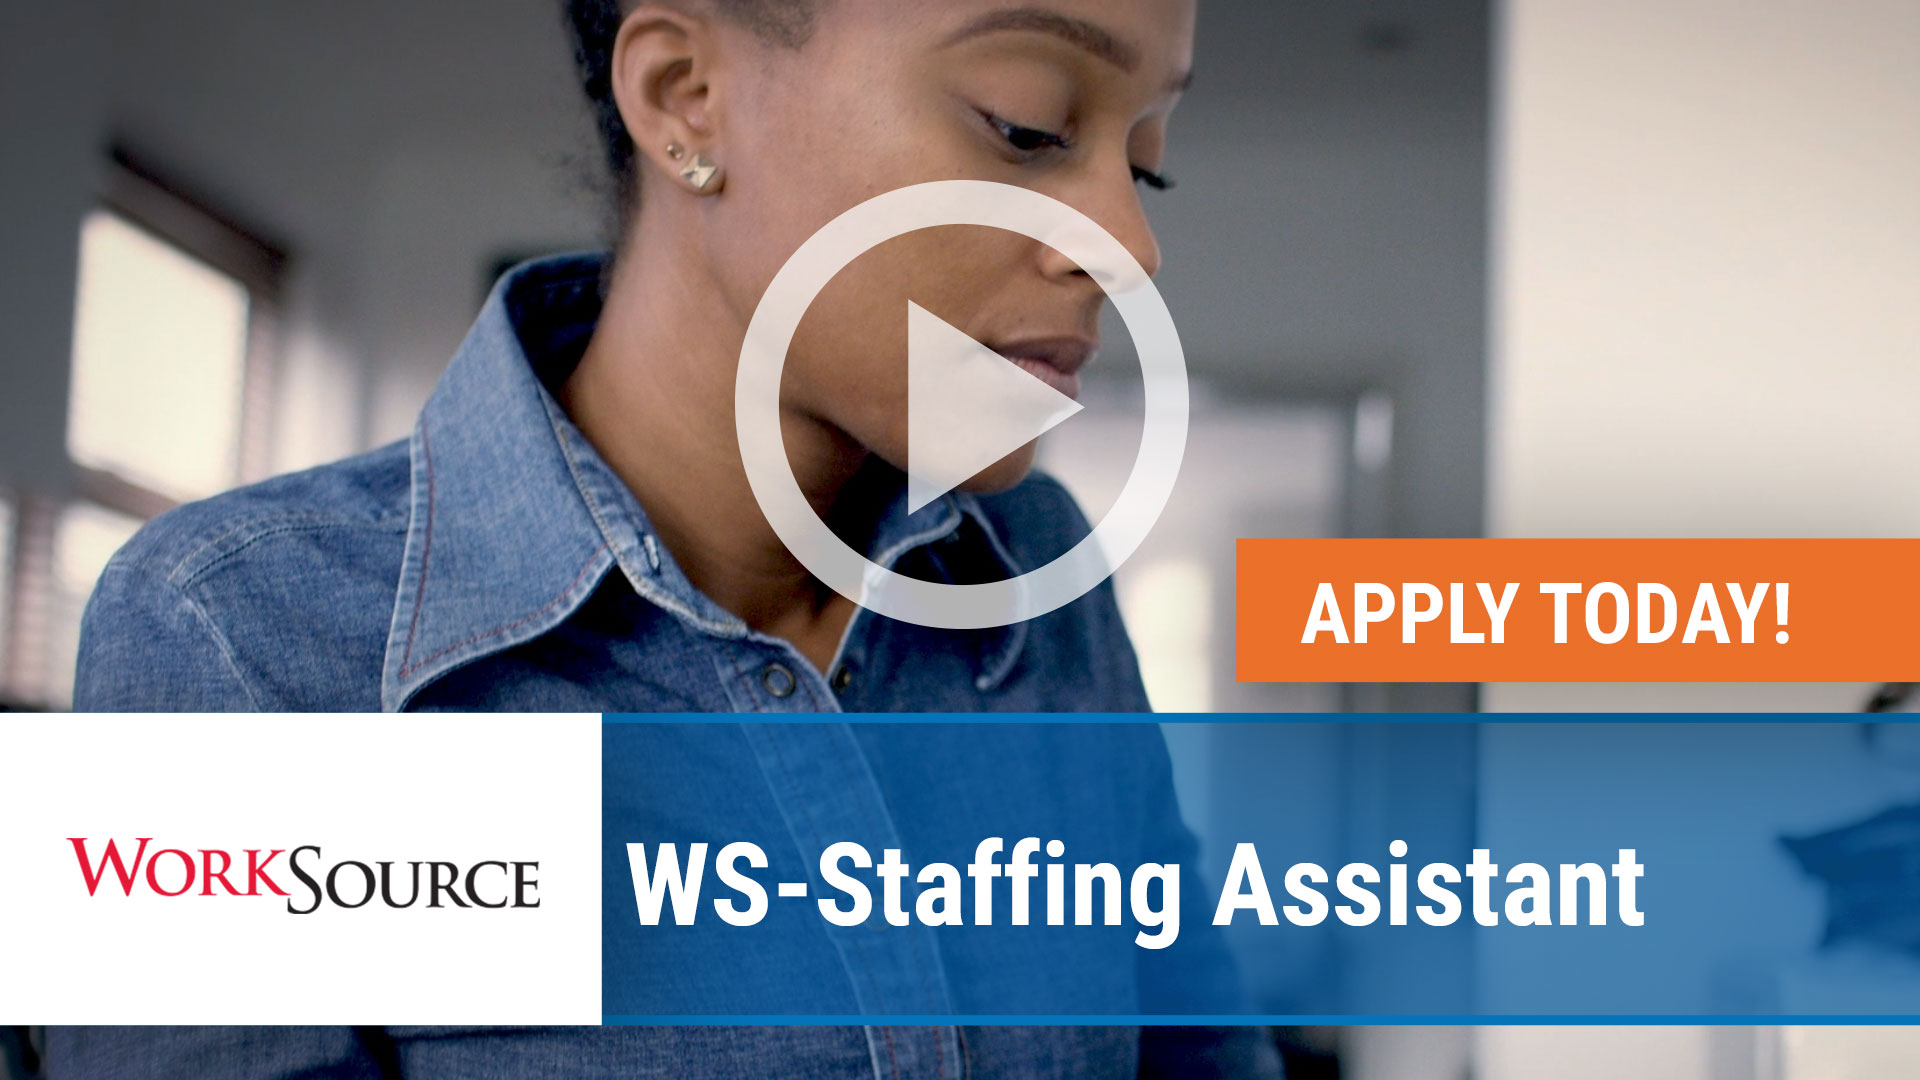 Watch our careers video for available job opening WS Staffing Assistant in Victor, Iowa